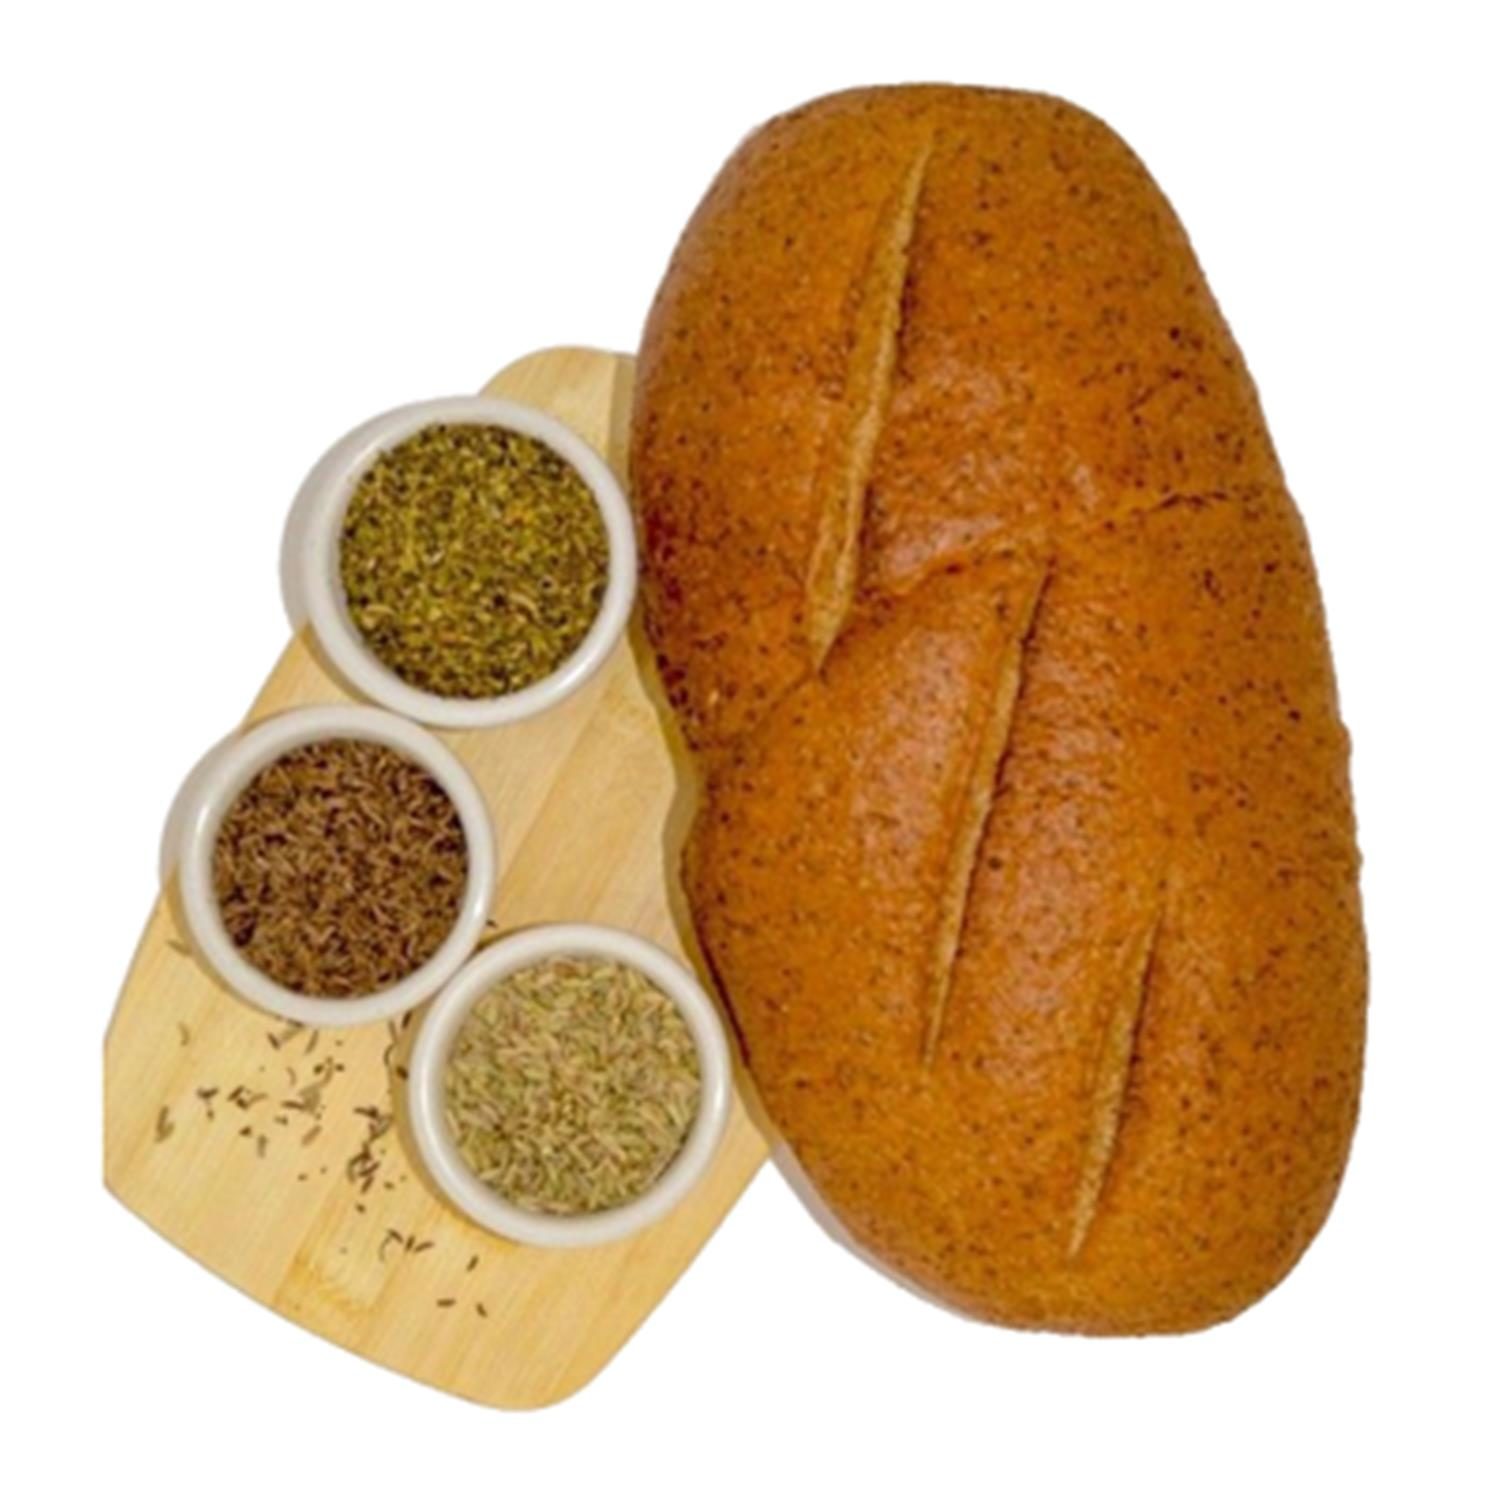 Magic Flavors Czech Caraway Sourdough Rye Bread 28oz